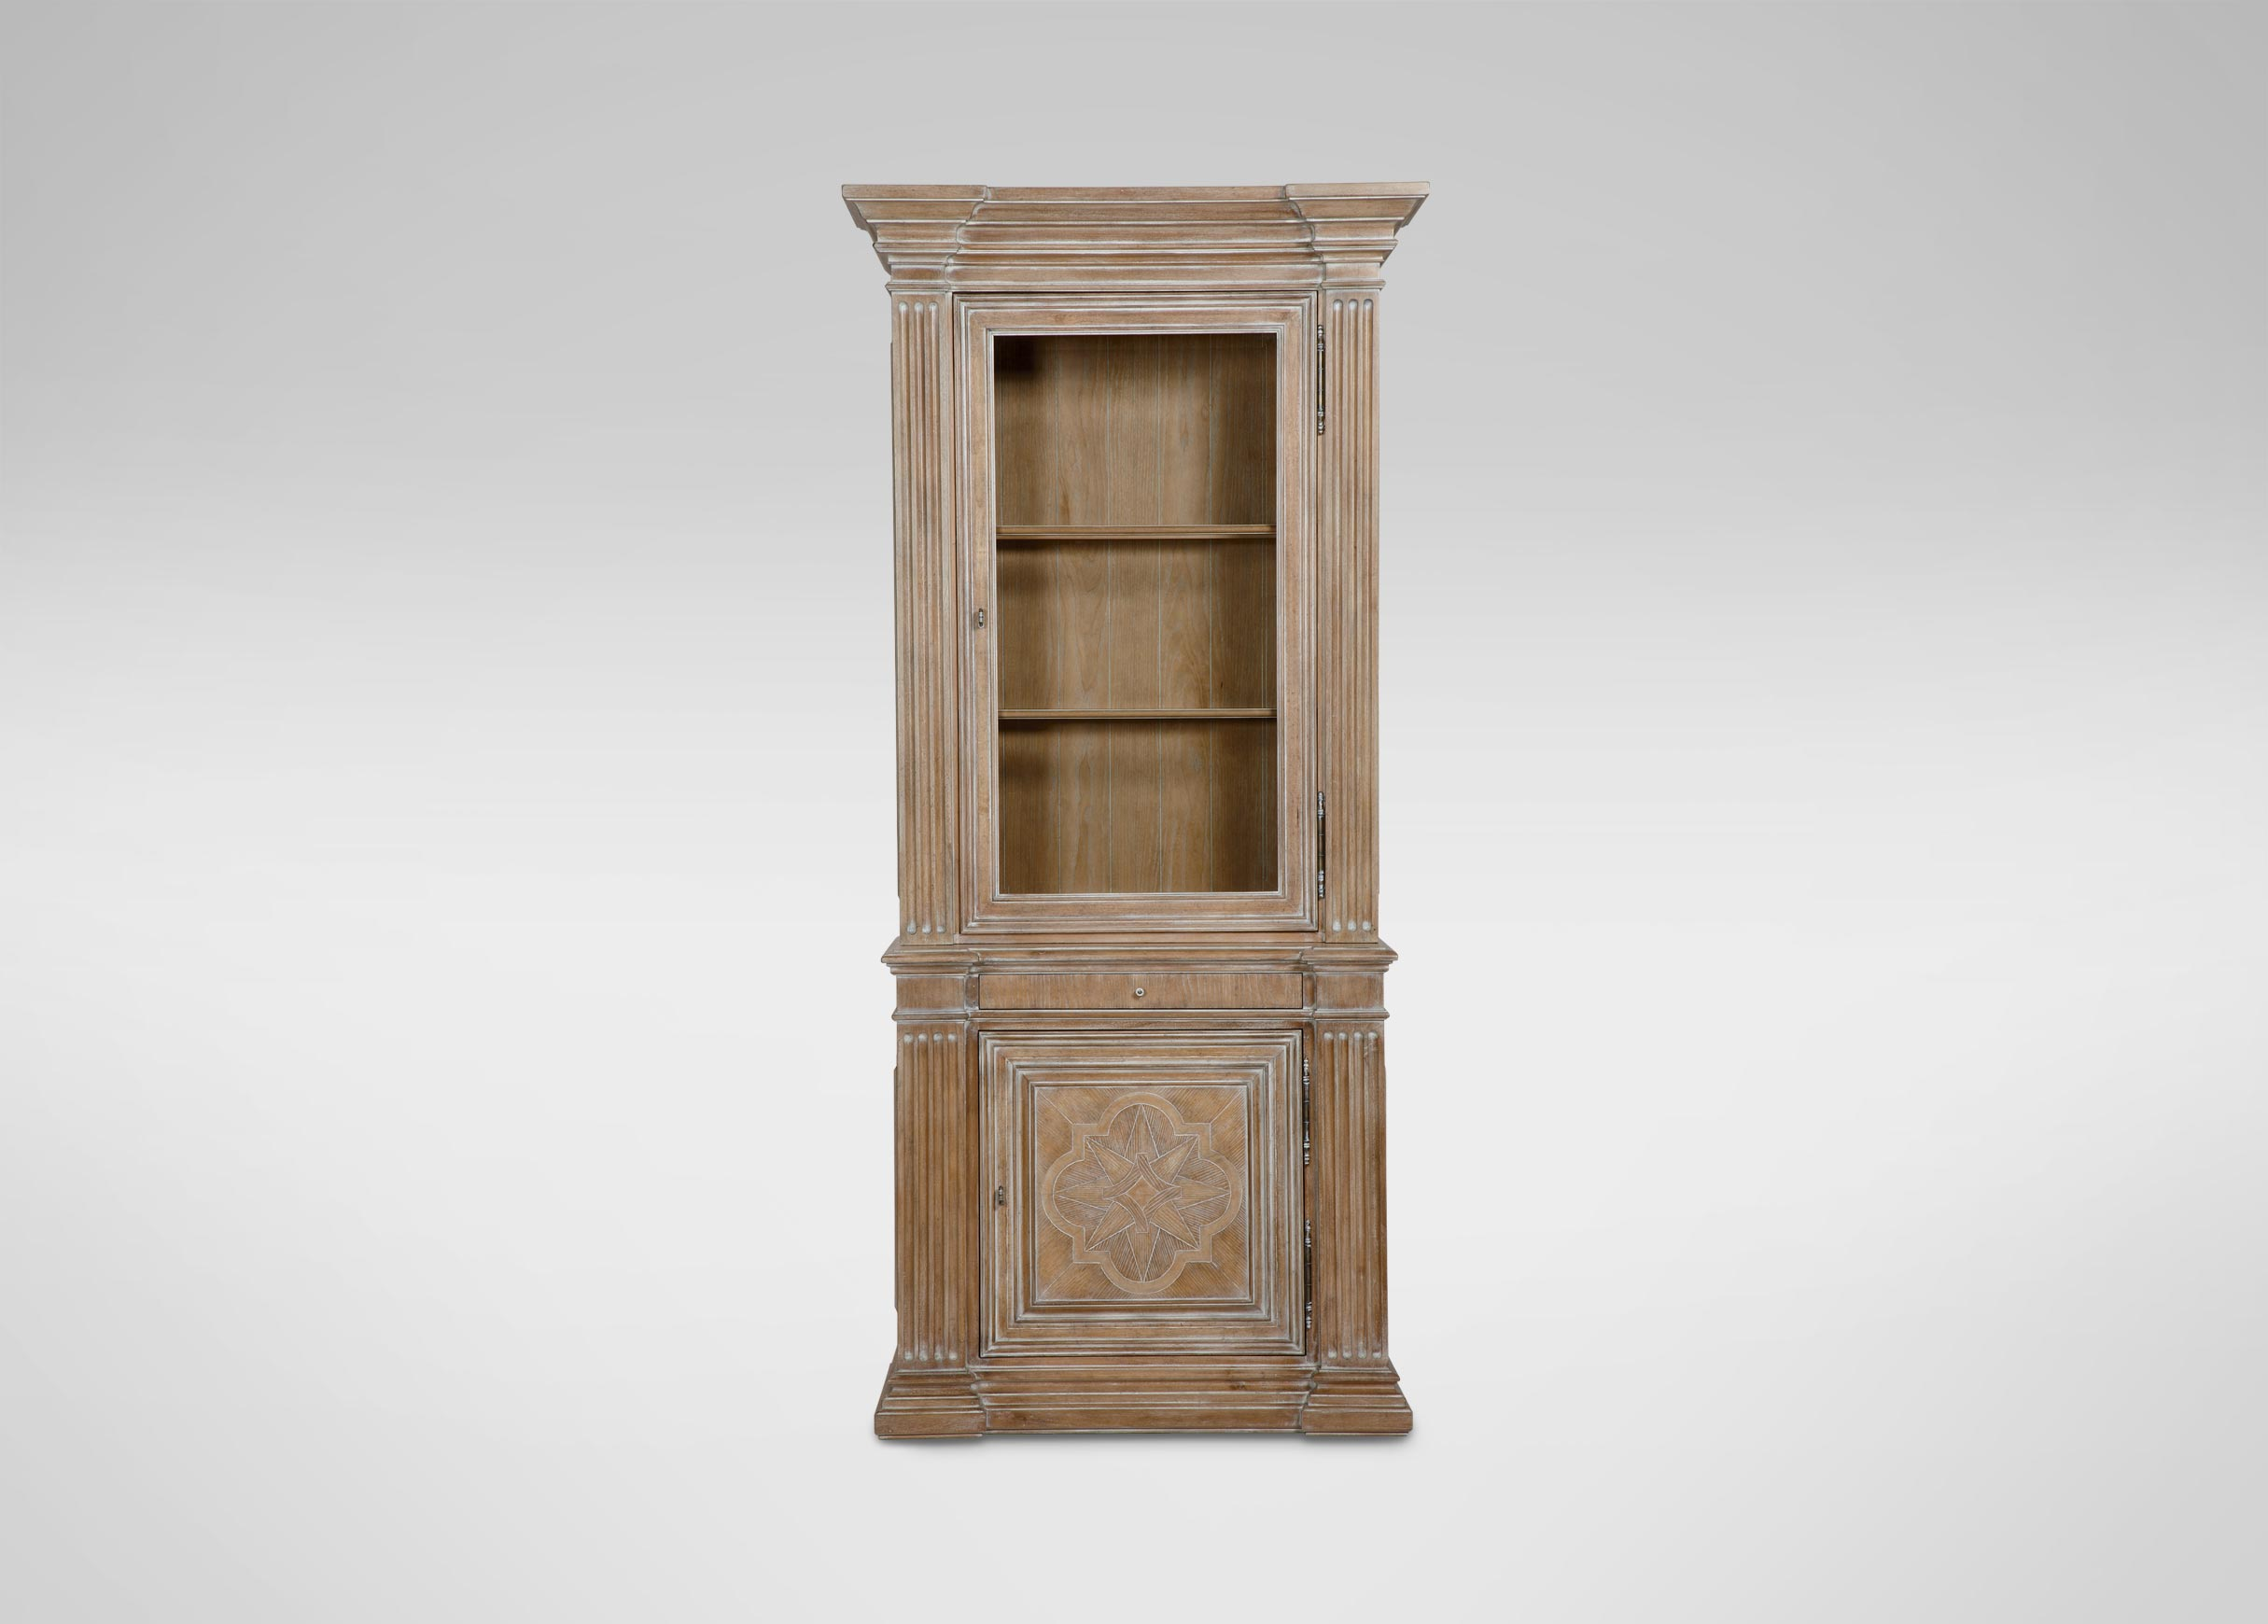 Images Lombardy Single Cabinet Large Gray